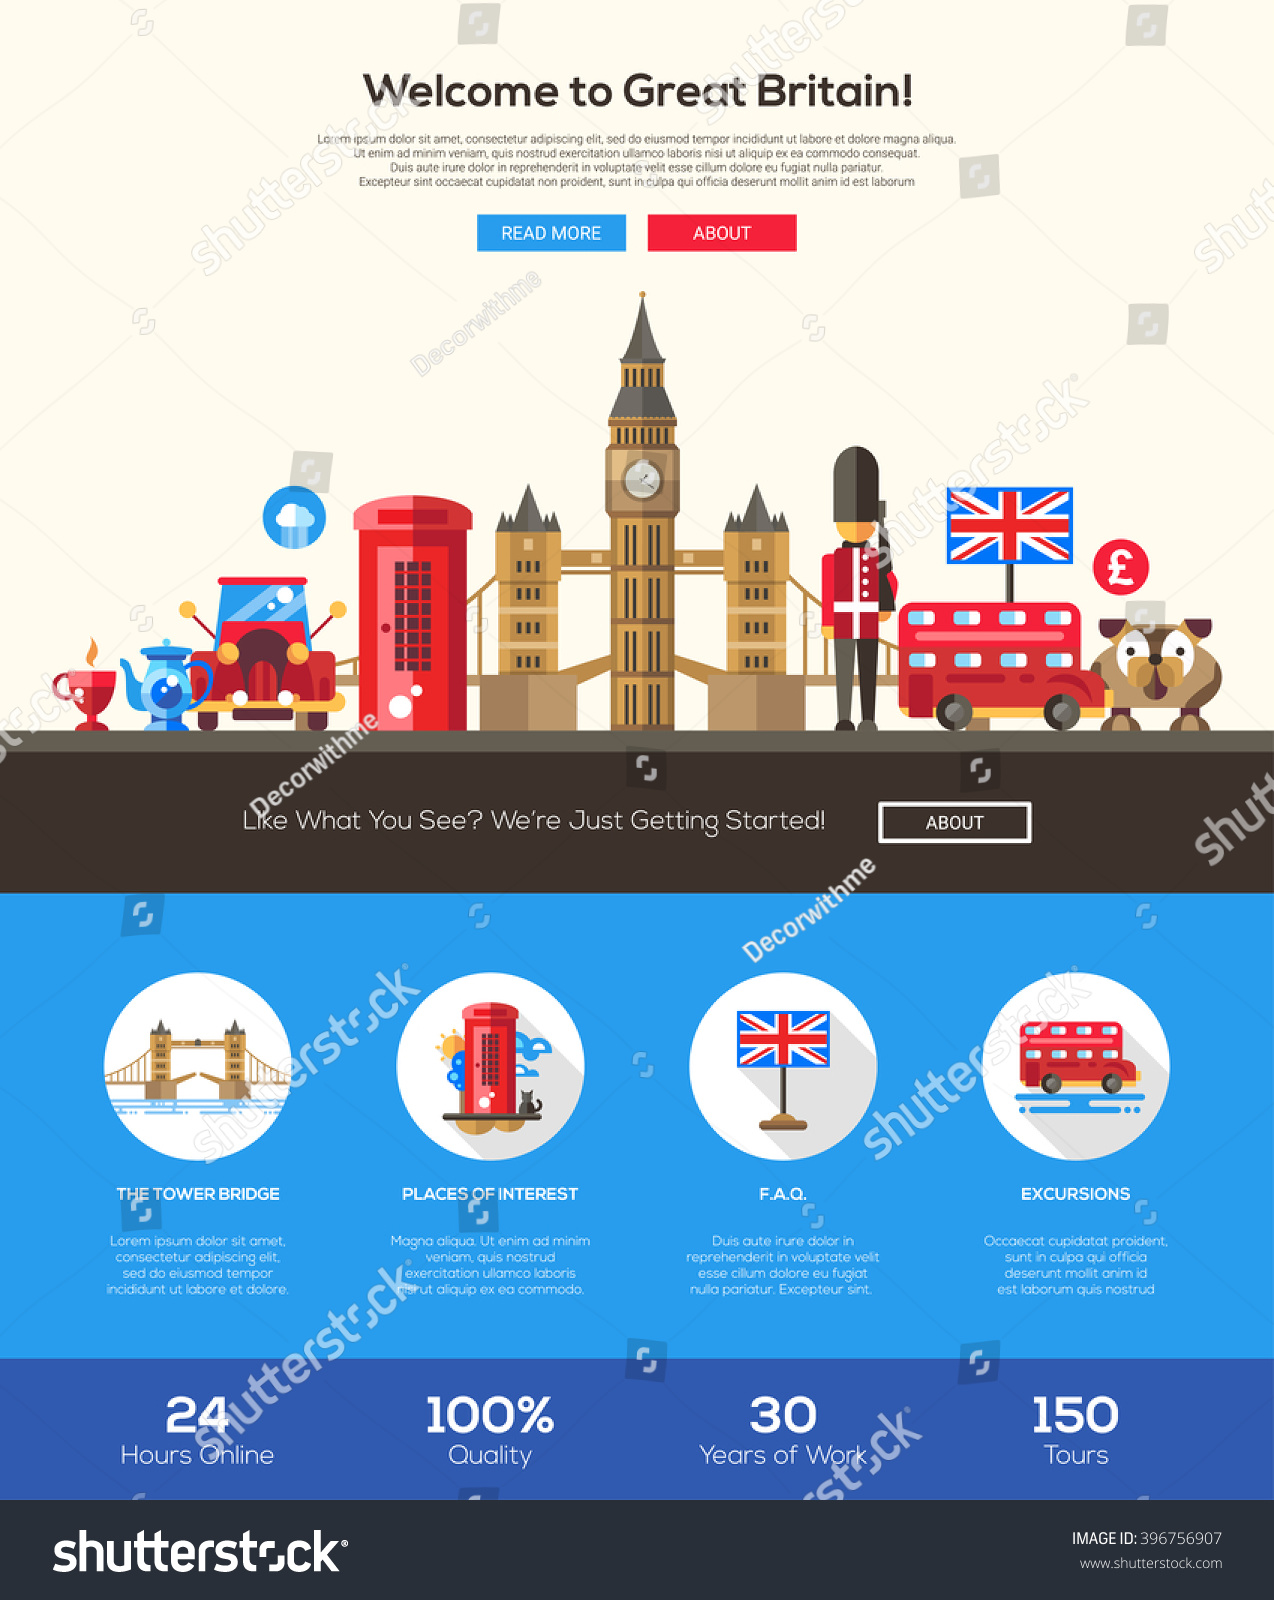 html welcome page template - welcome to great britain travel web site one page website